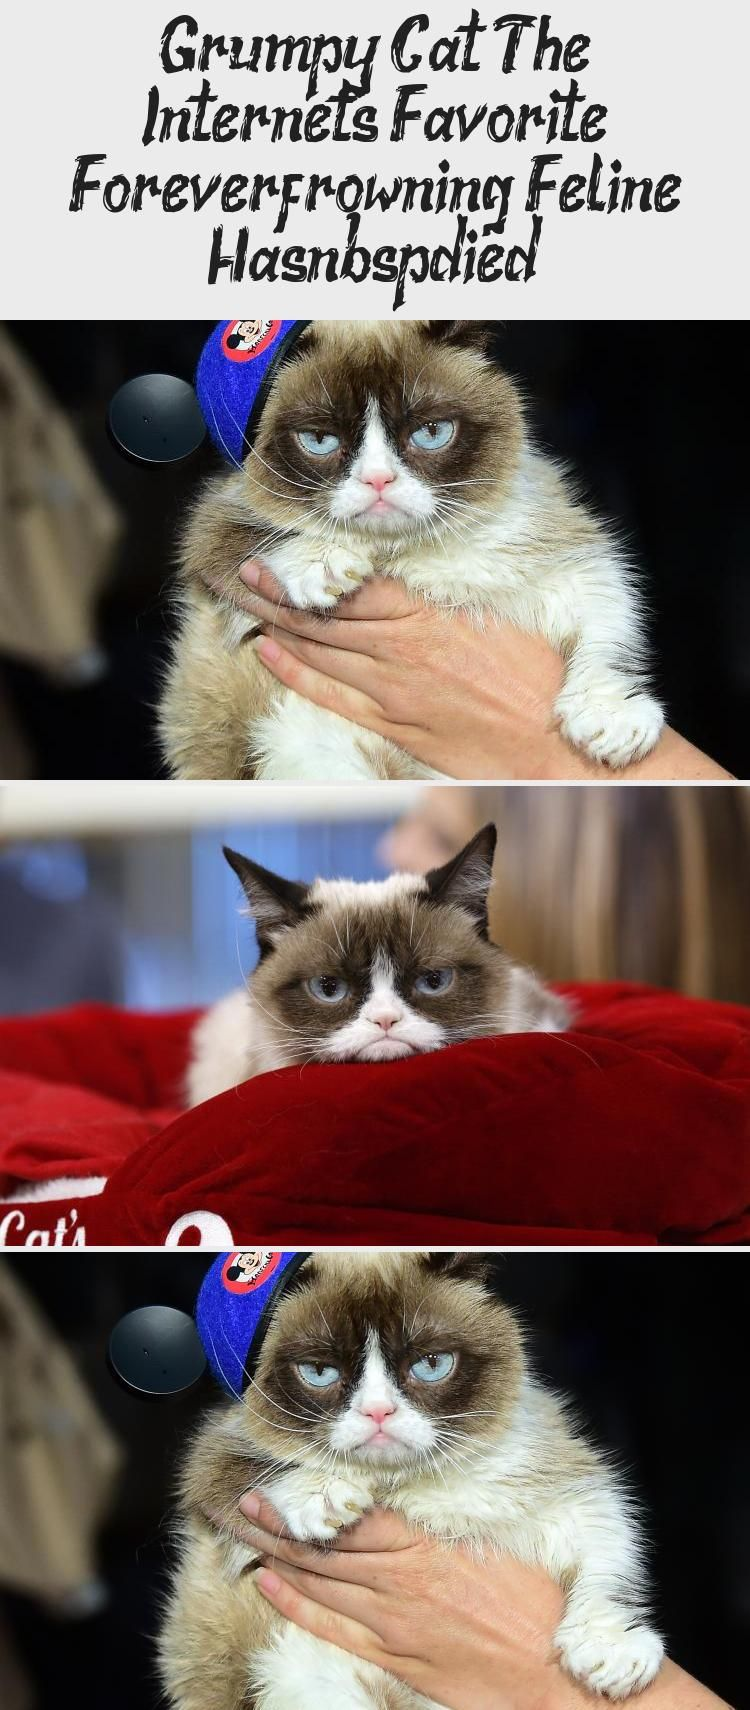 Grumpy Cat The Internet S Favorite Forever Frowning Feline Has Died Cats In 2020 Grumpy Cat Cats Grump Cat